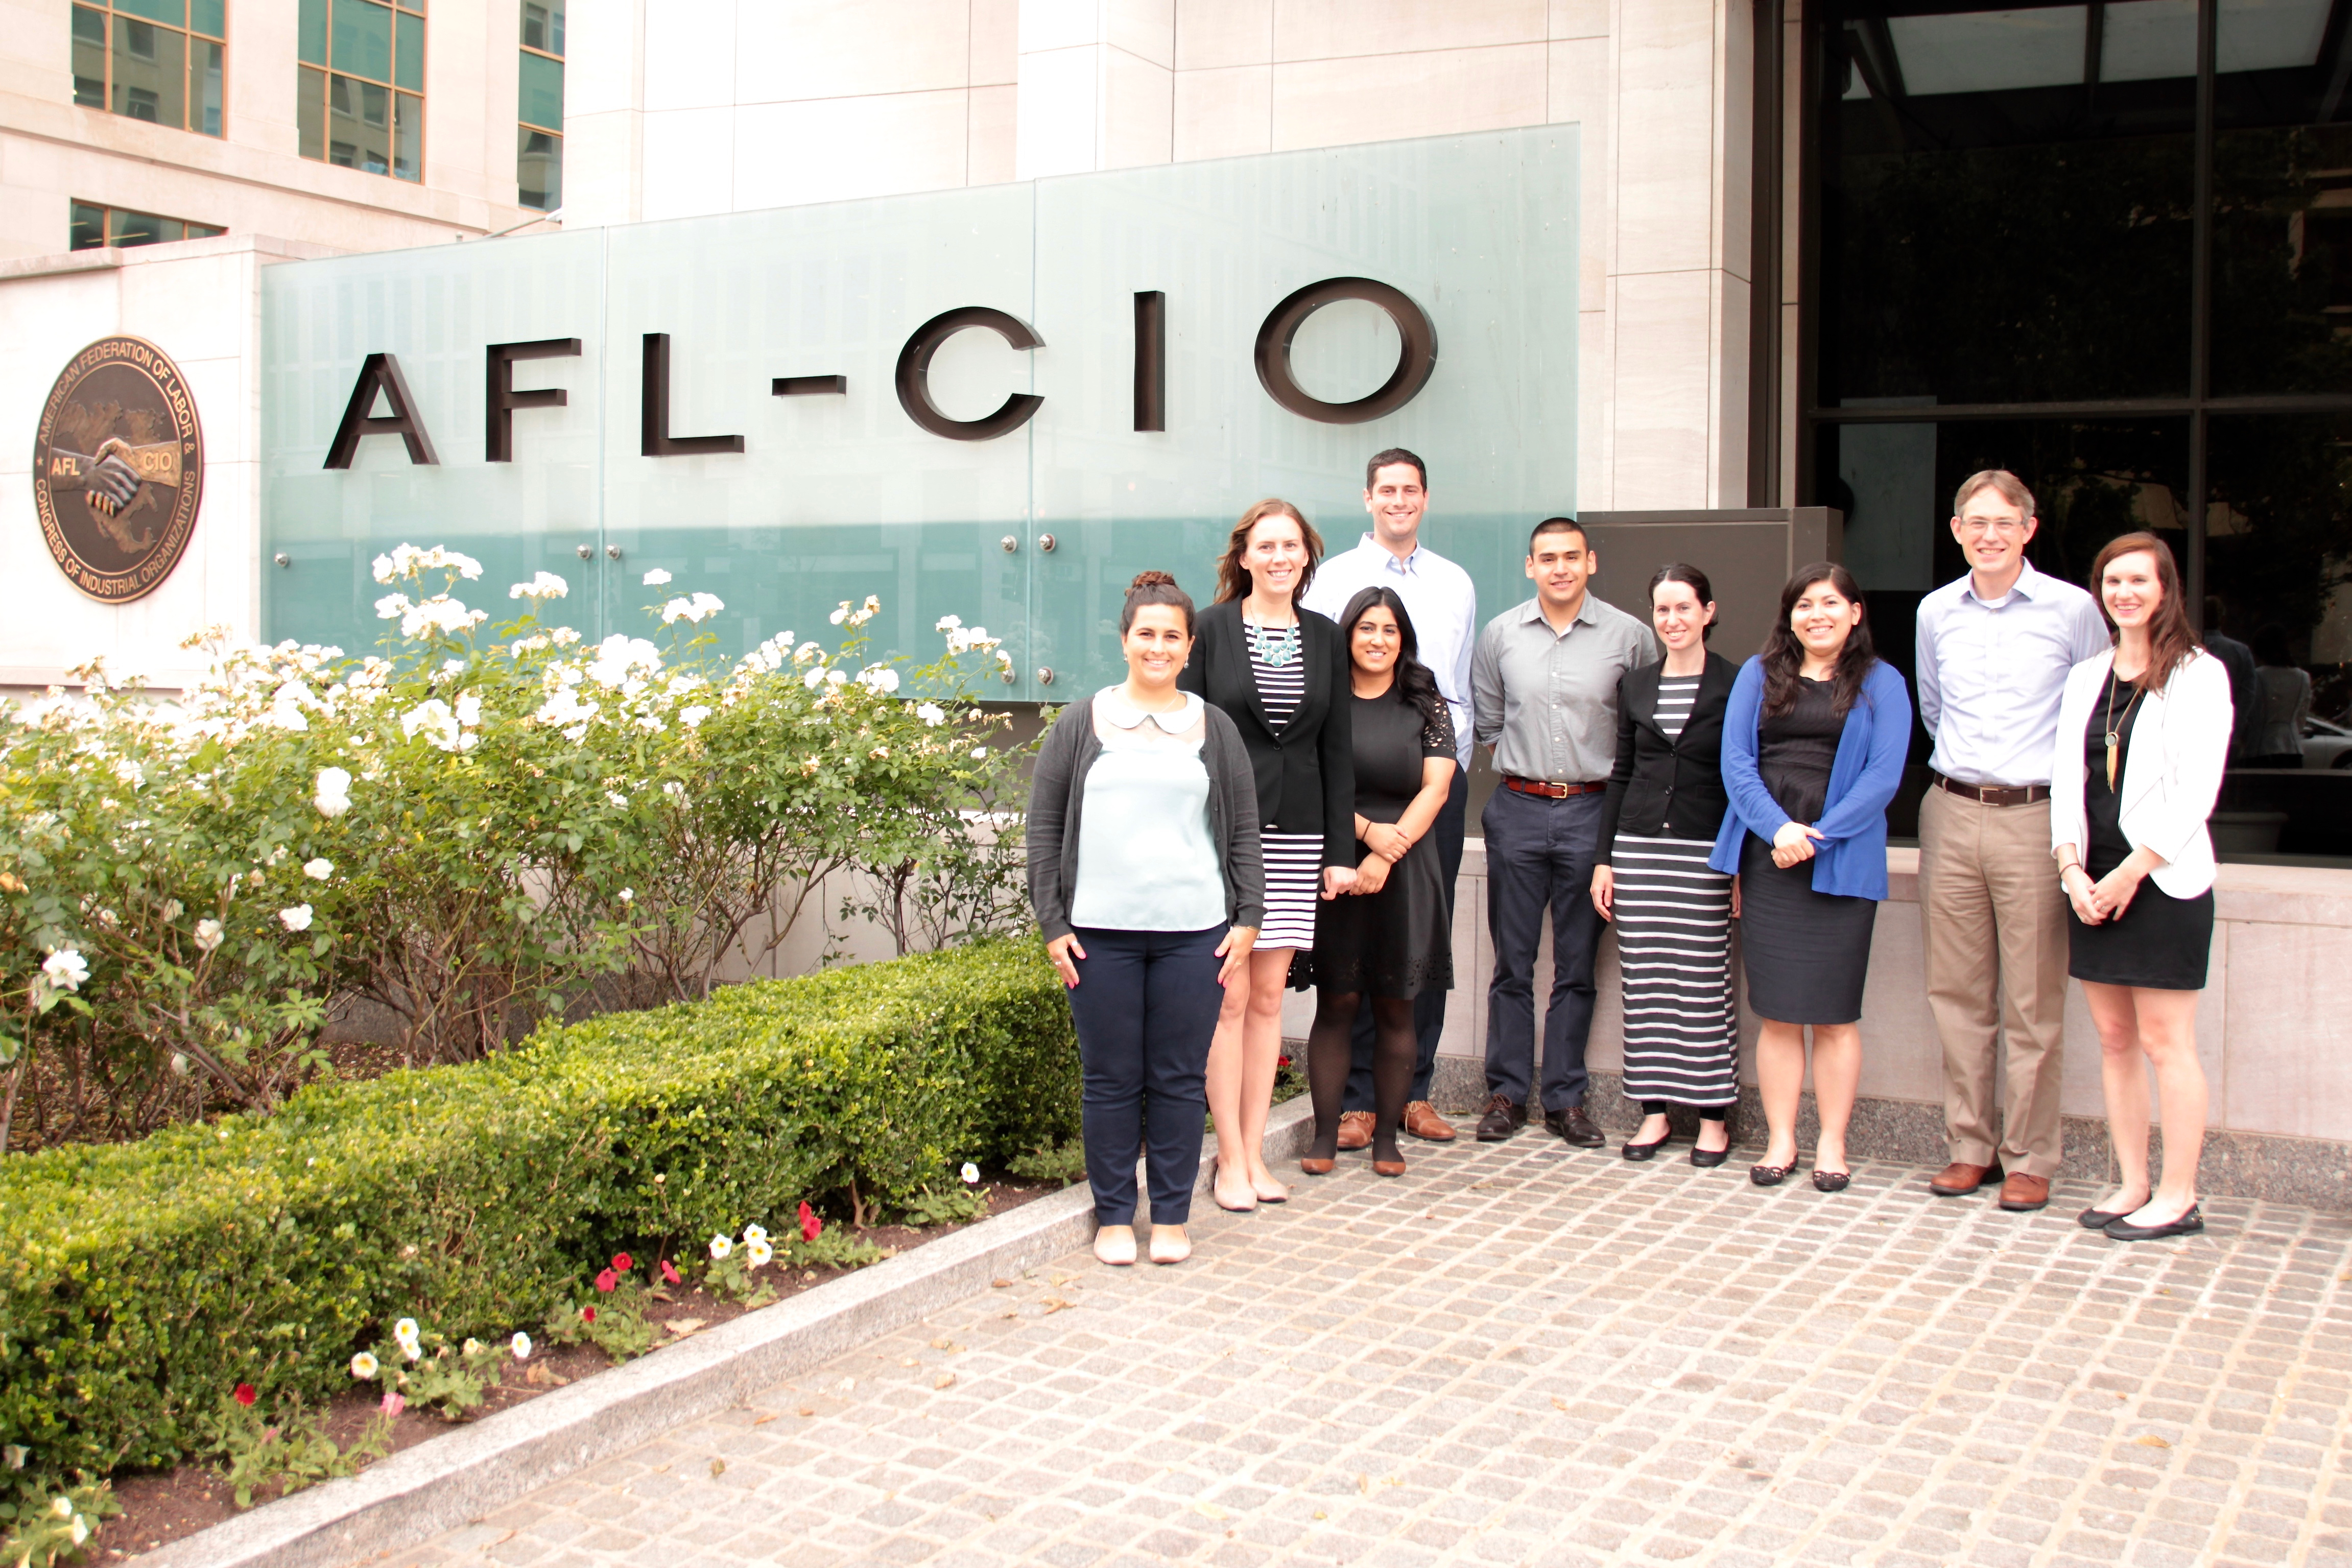 Law students from Union Summer outside the AFL-CIO HQ.